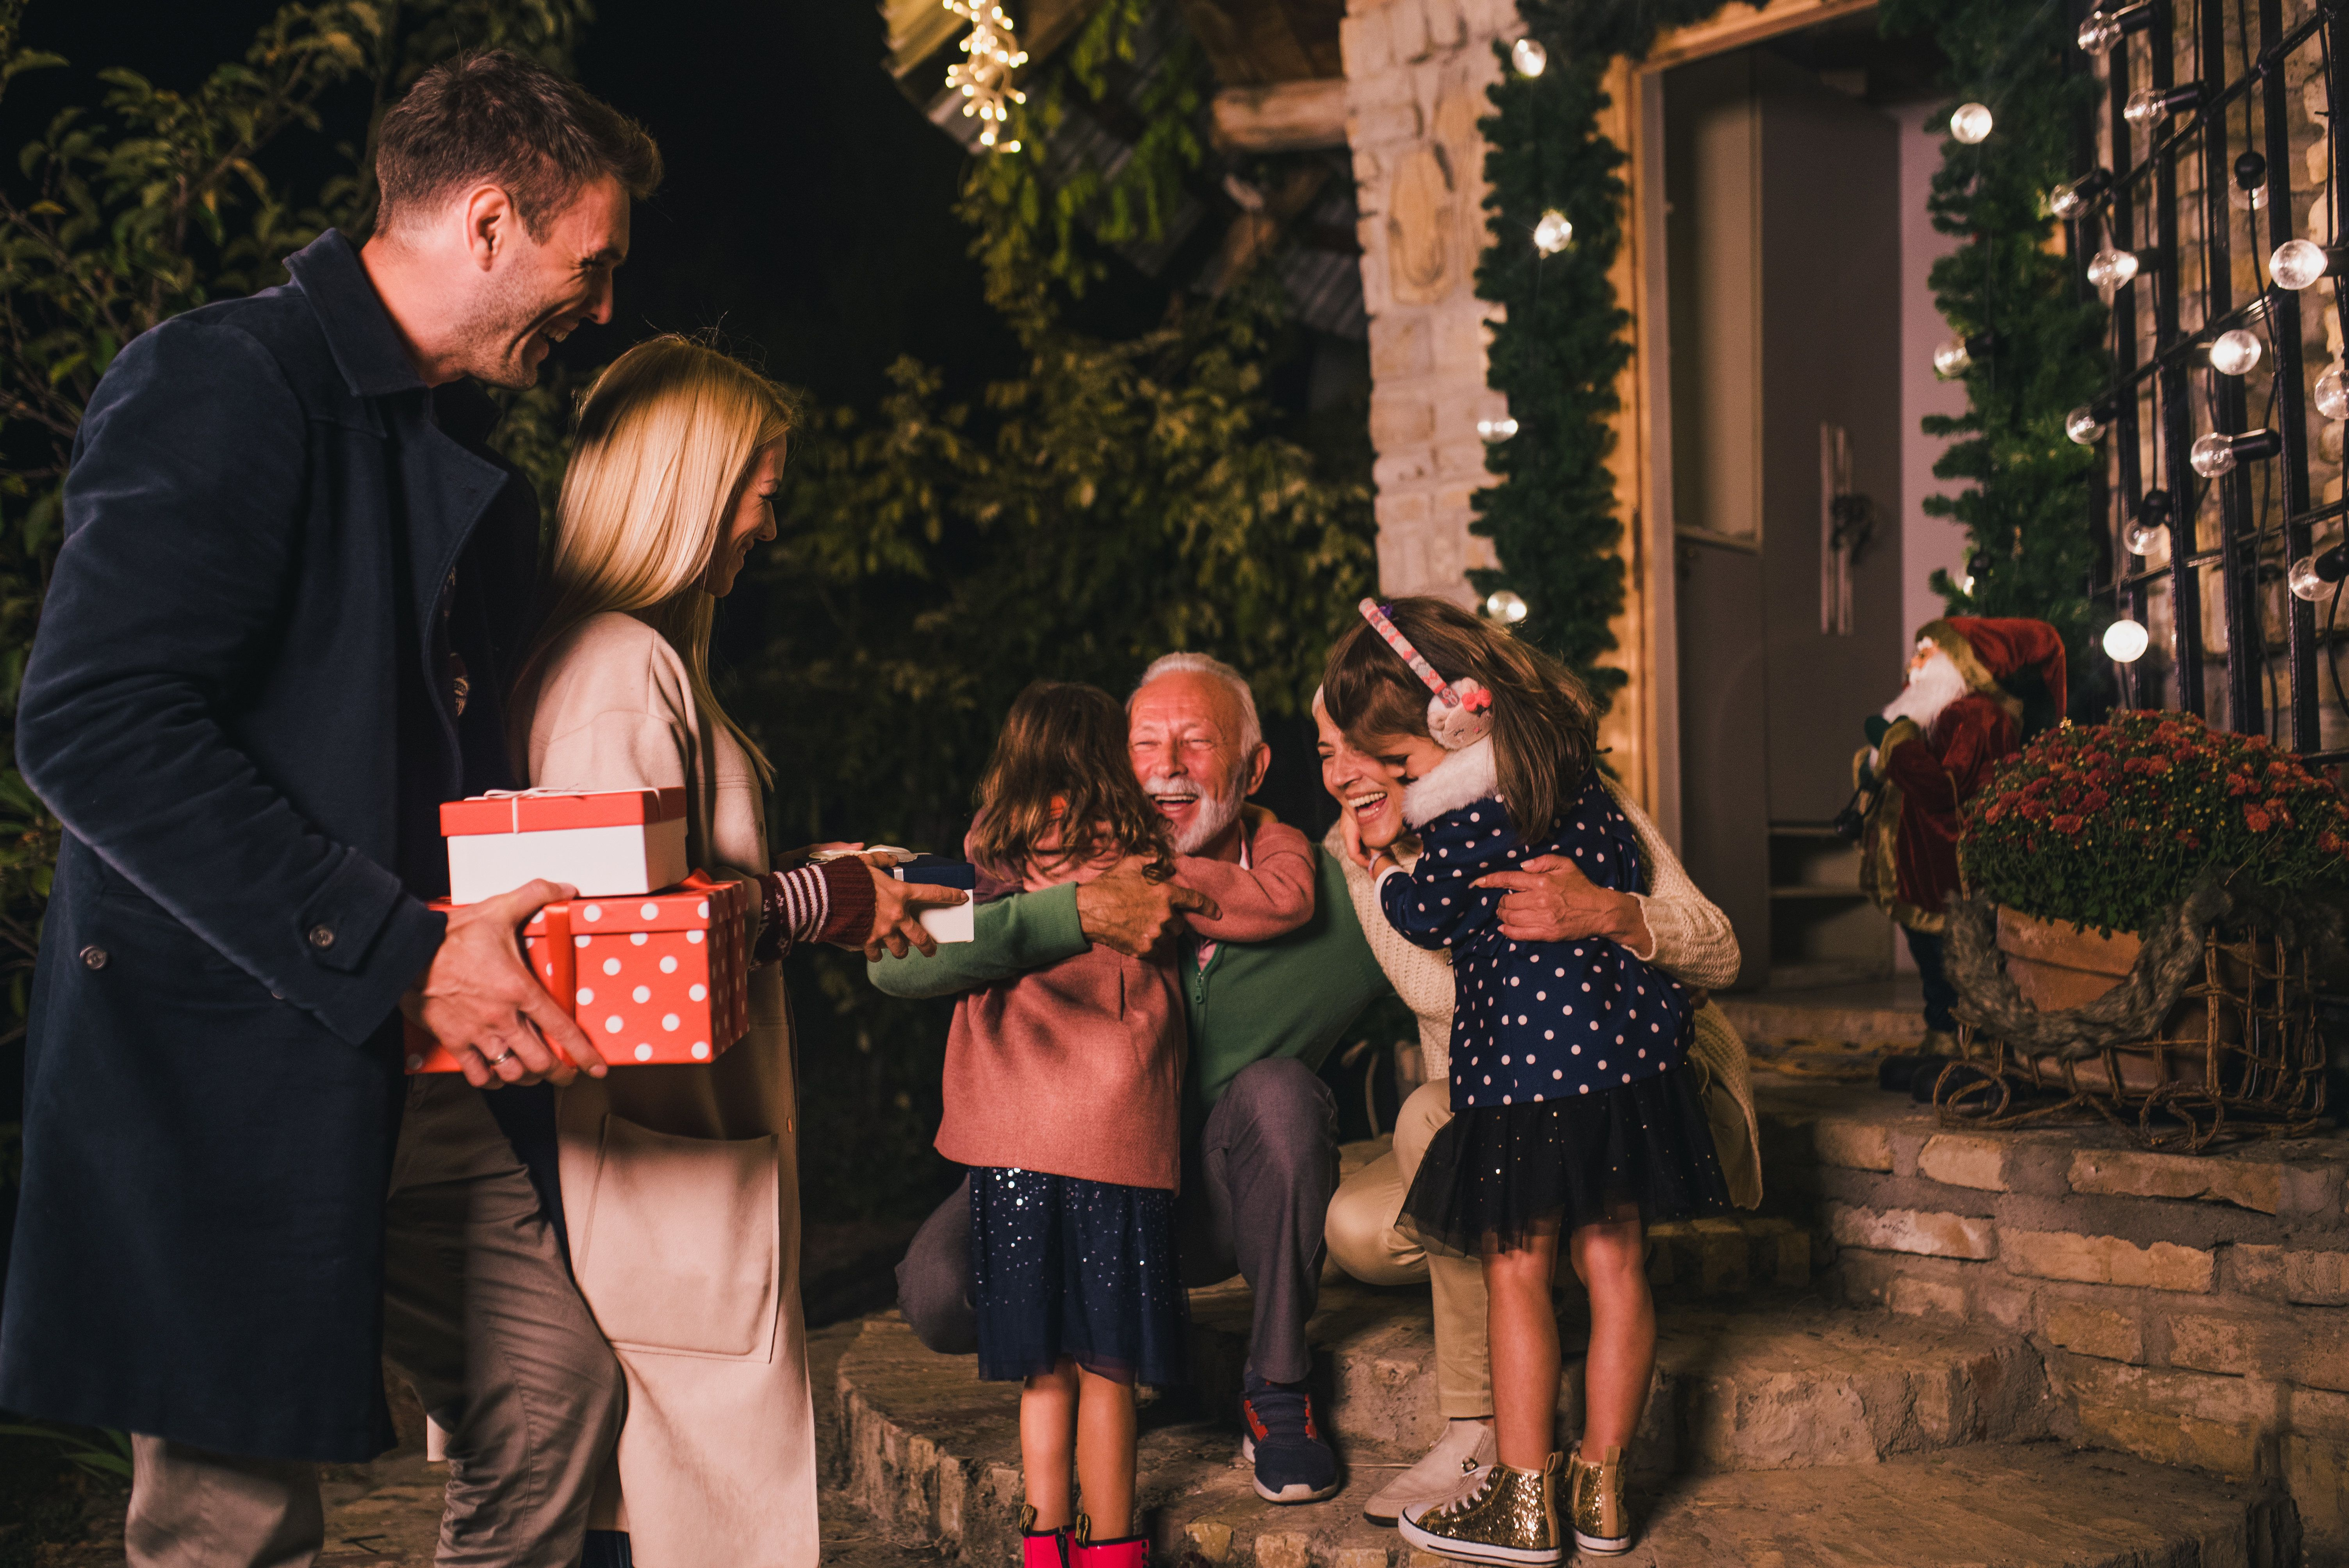 10 Things To Do With Your Kids This Christmas That Won't Cost A